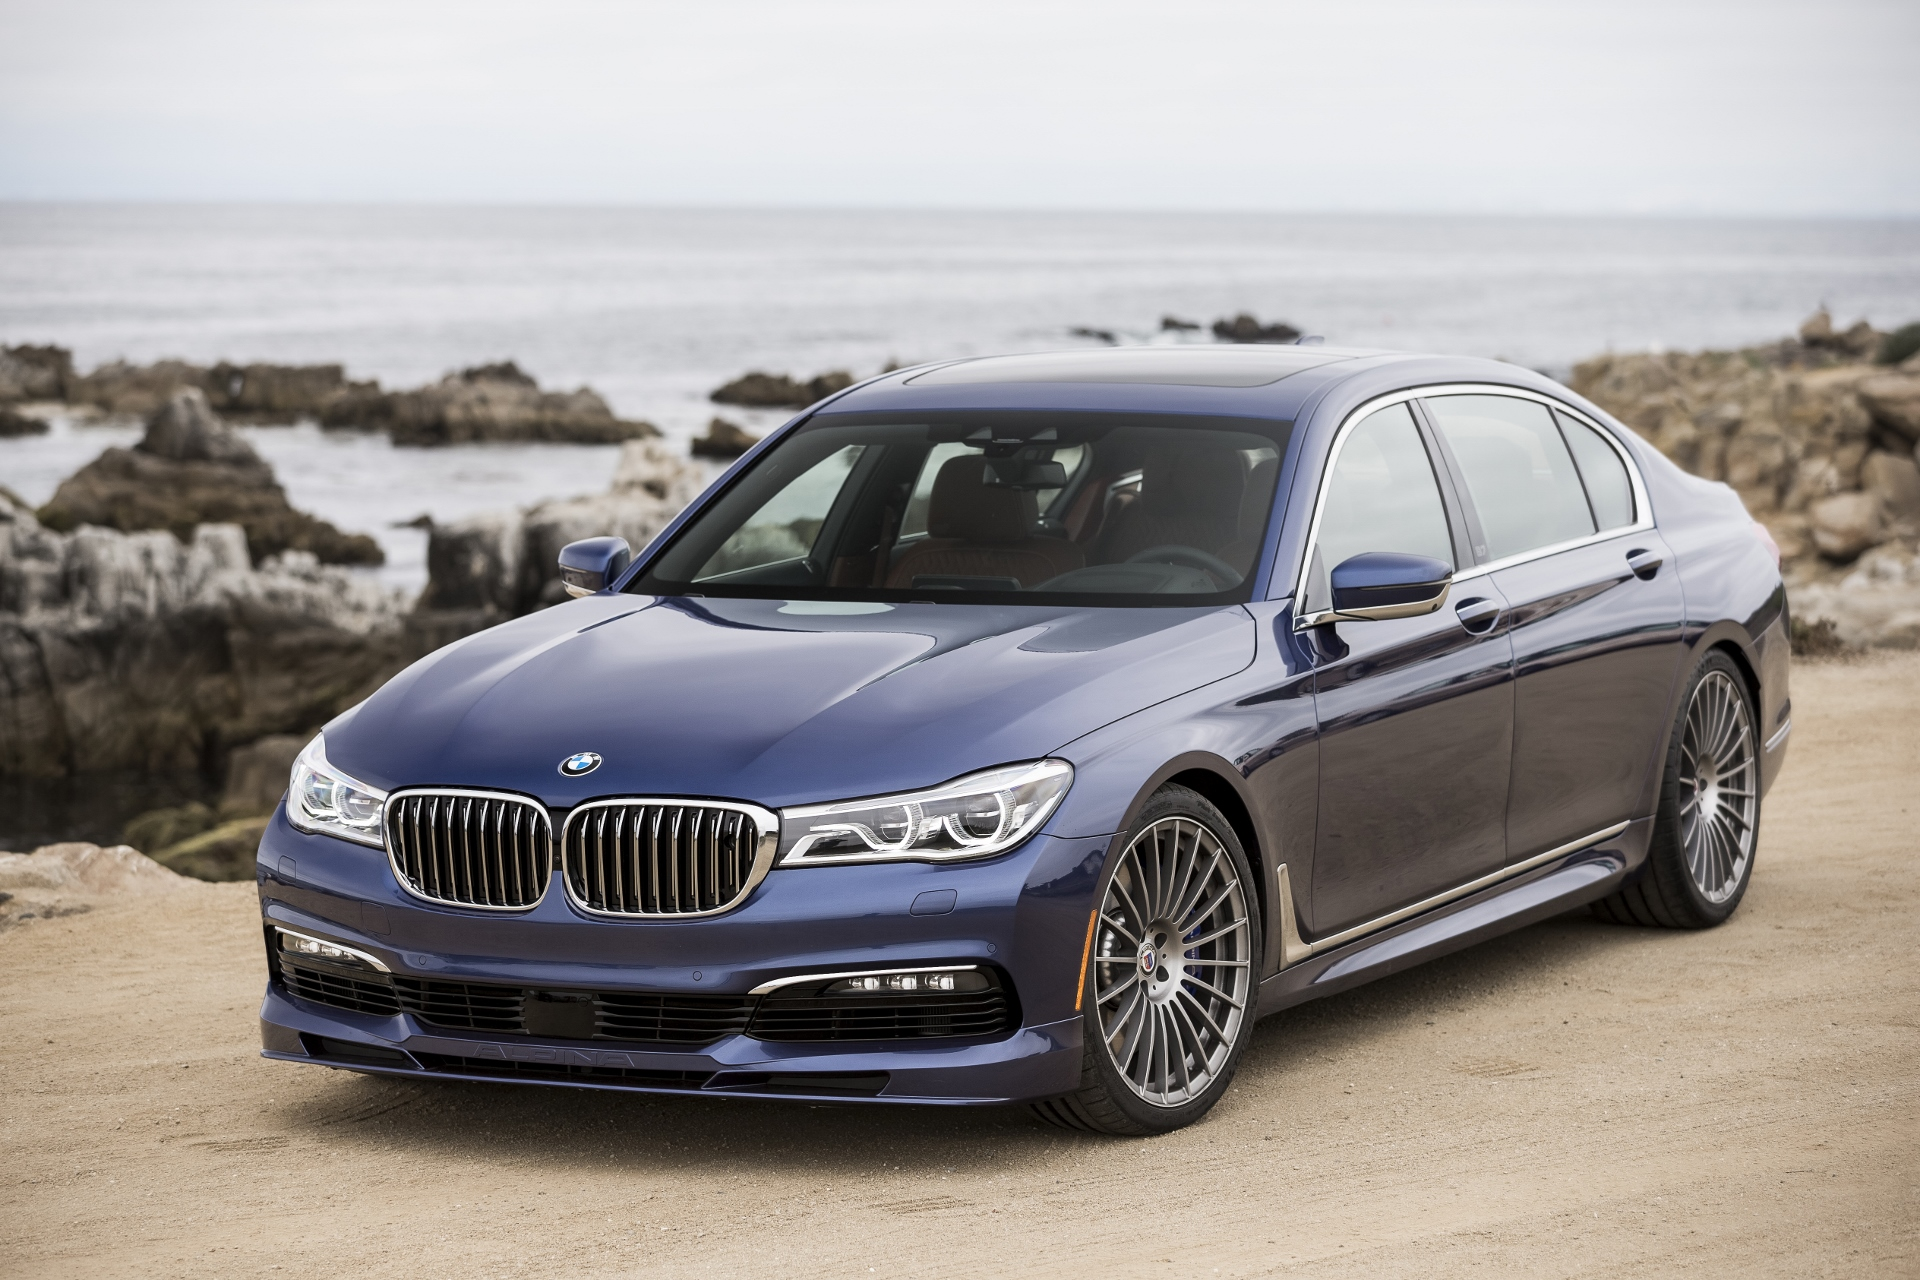 BMW Alpina B First Drive Review A Better BMW - Alpina bmw